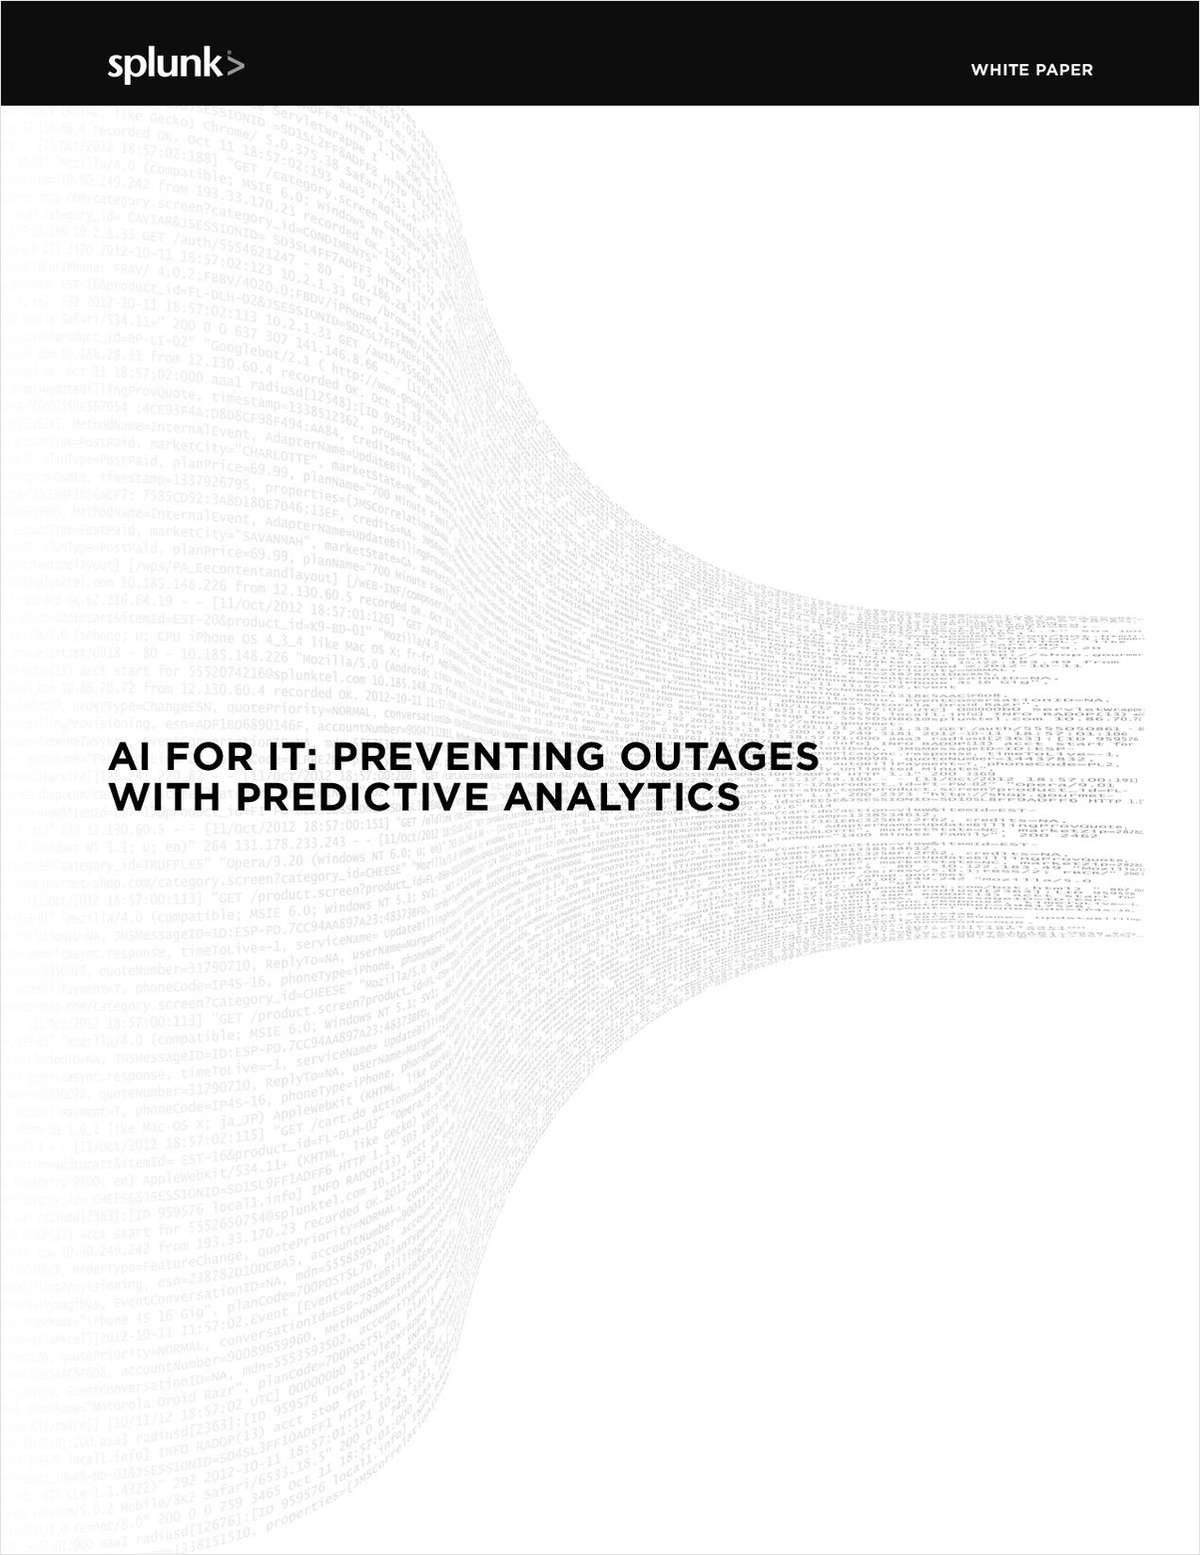 AI for IT: Preventing Outages with Predictive Analytics